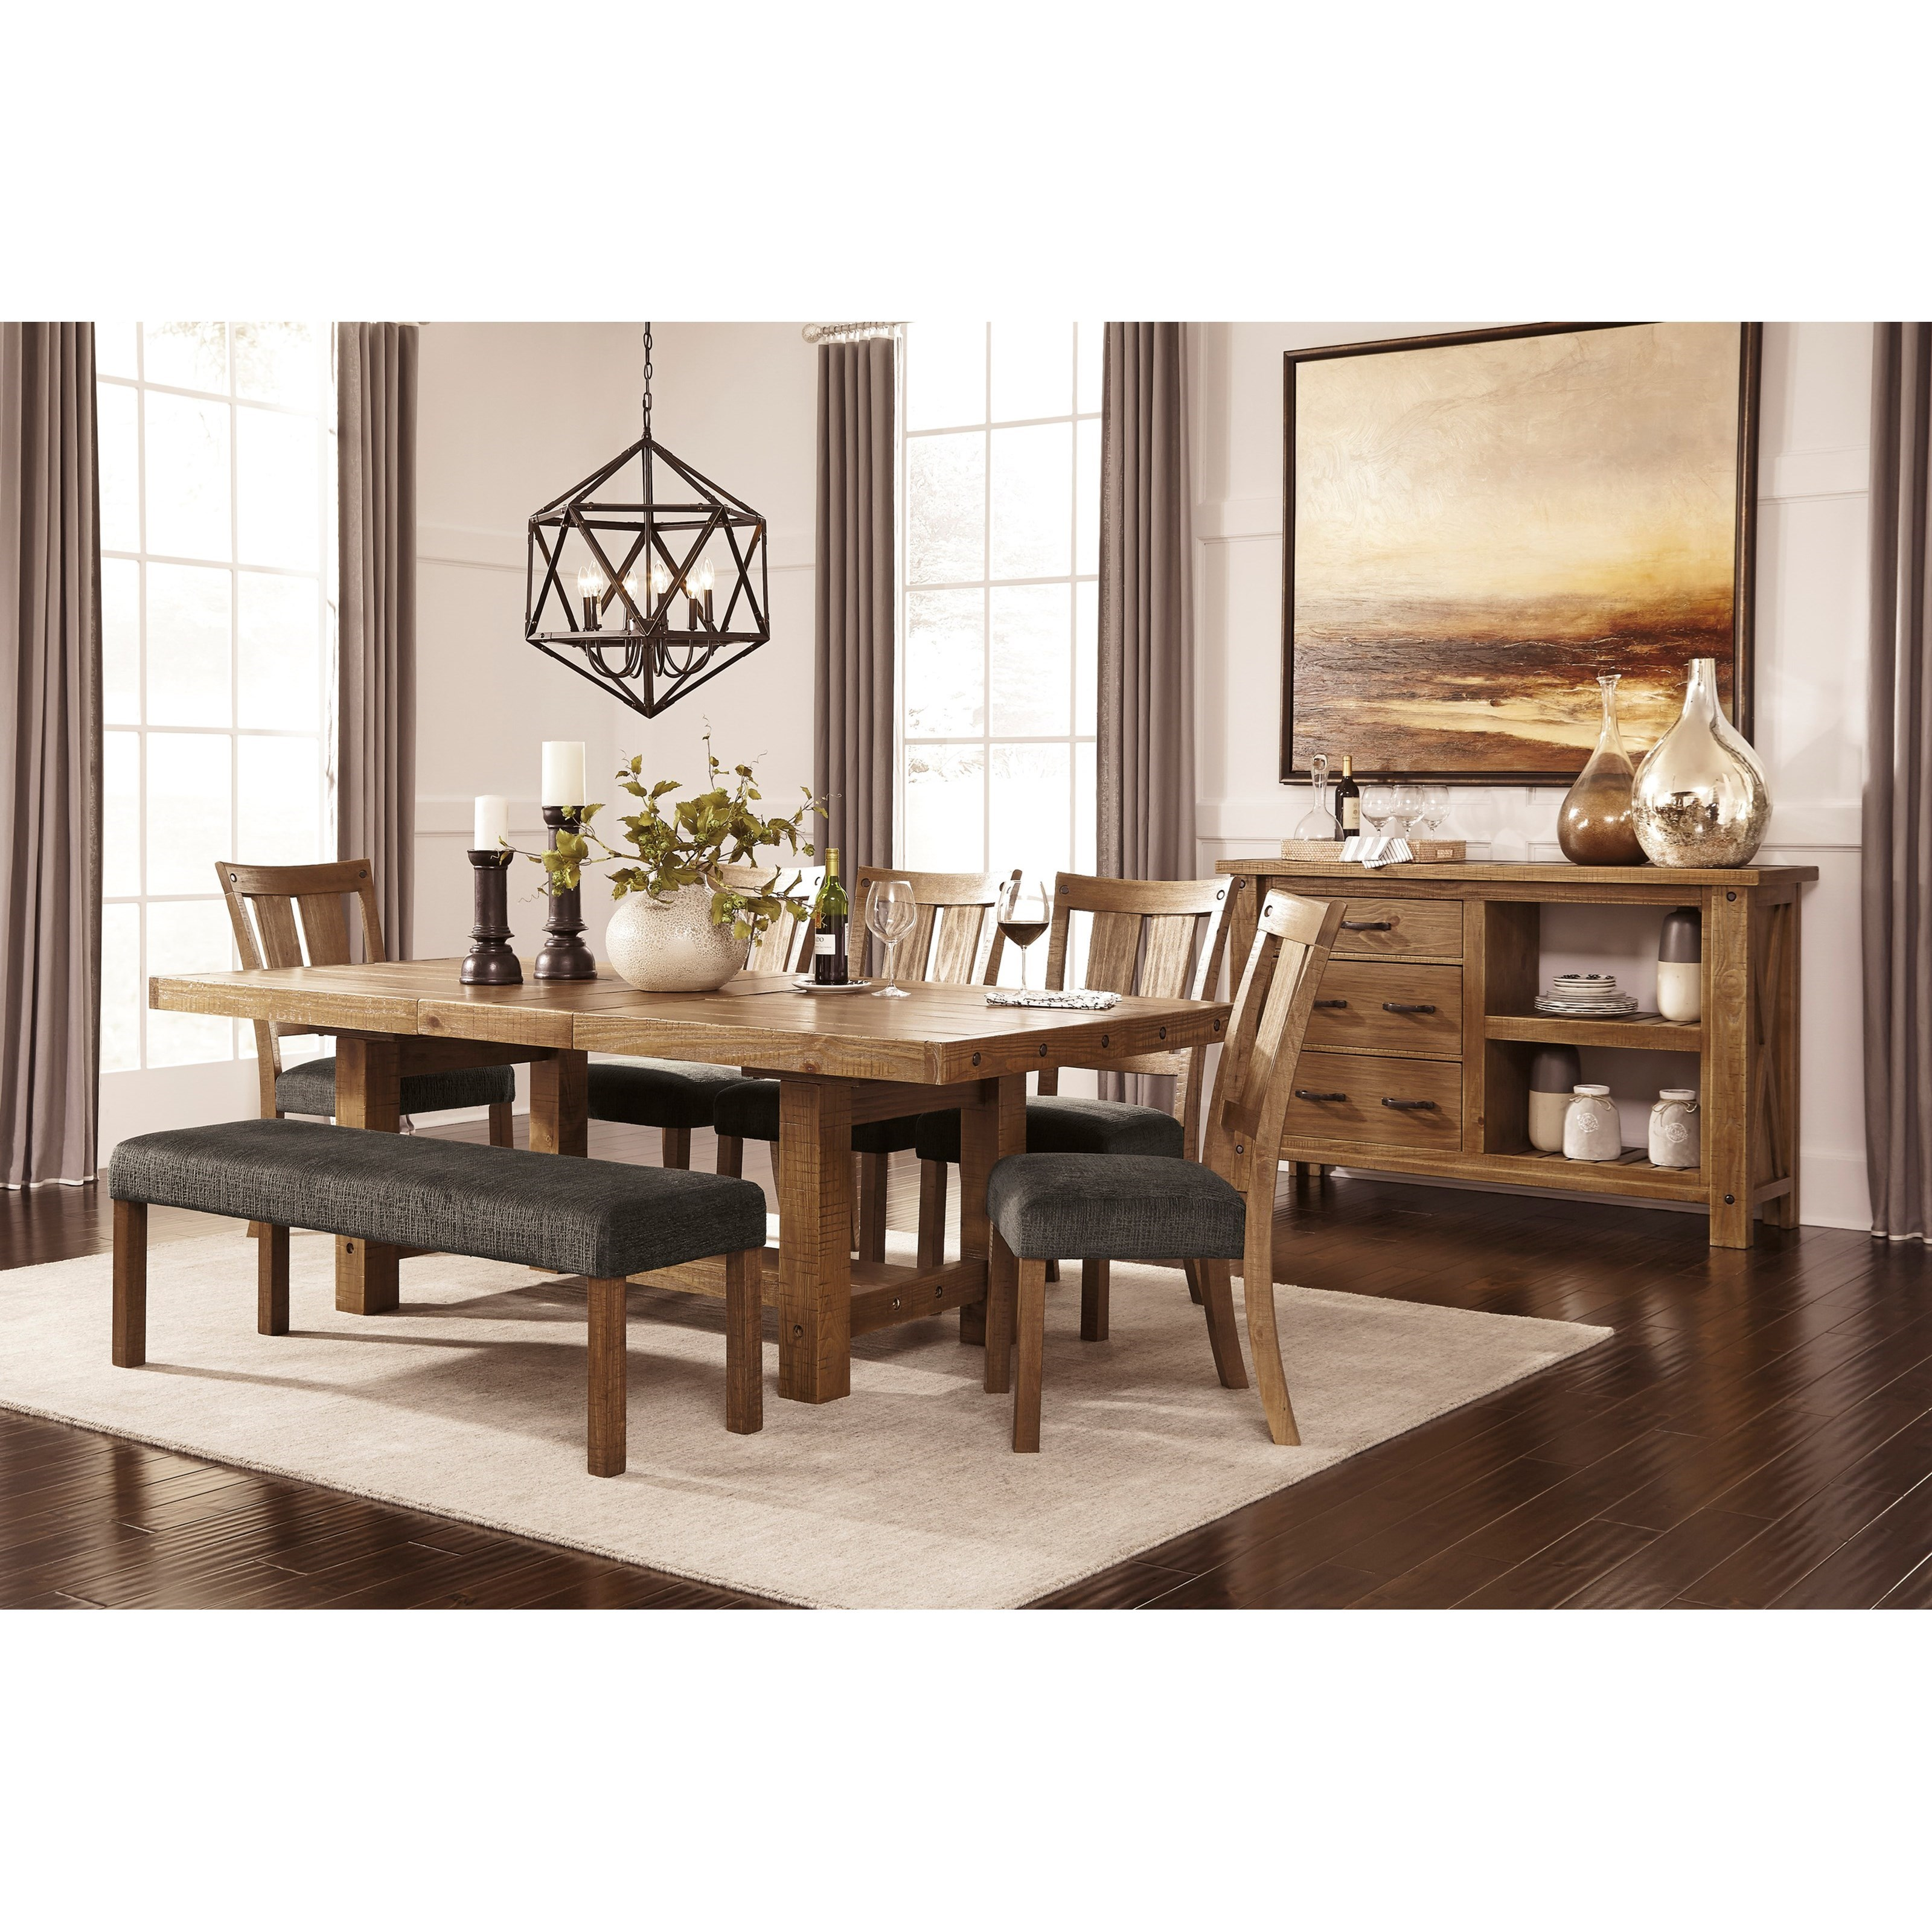 Casual dining room group by signature design by ashley for Informal dining